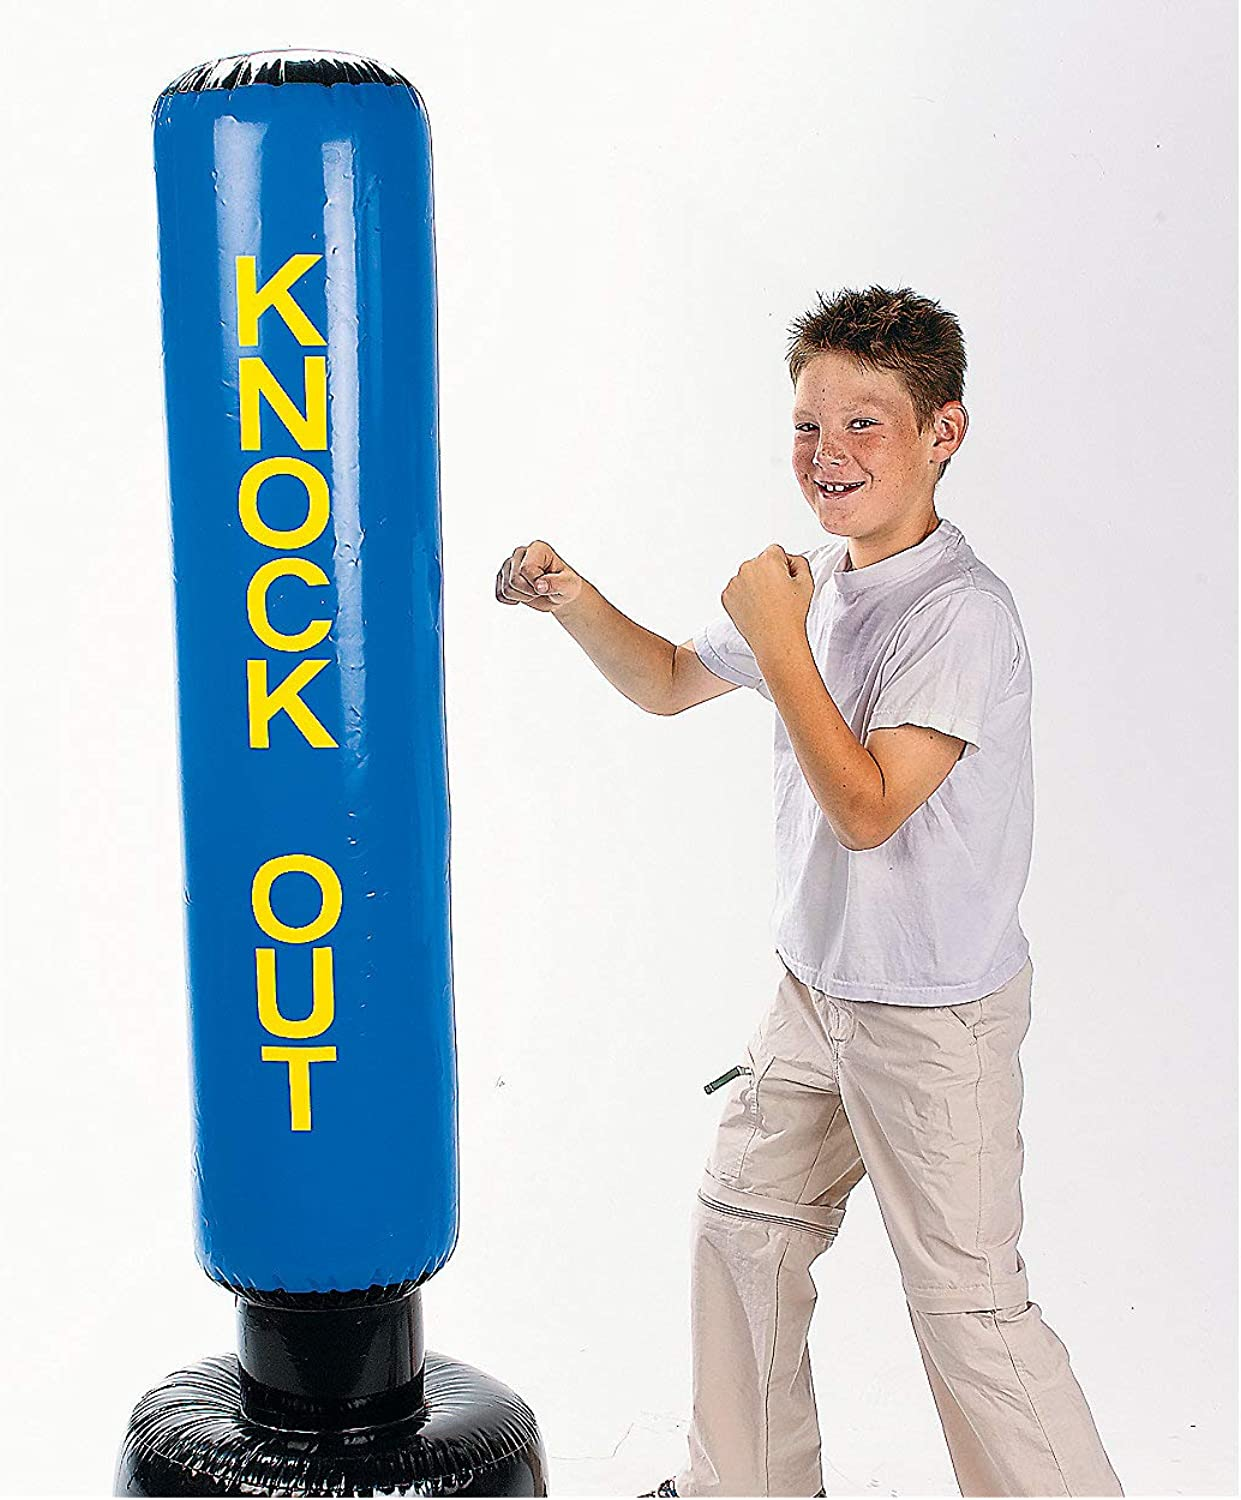 Inflatable Punching Bag (5 feet Tall) Fun Novelty Toy for Active Kids